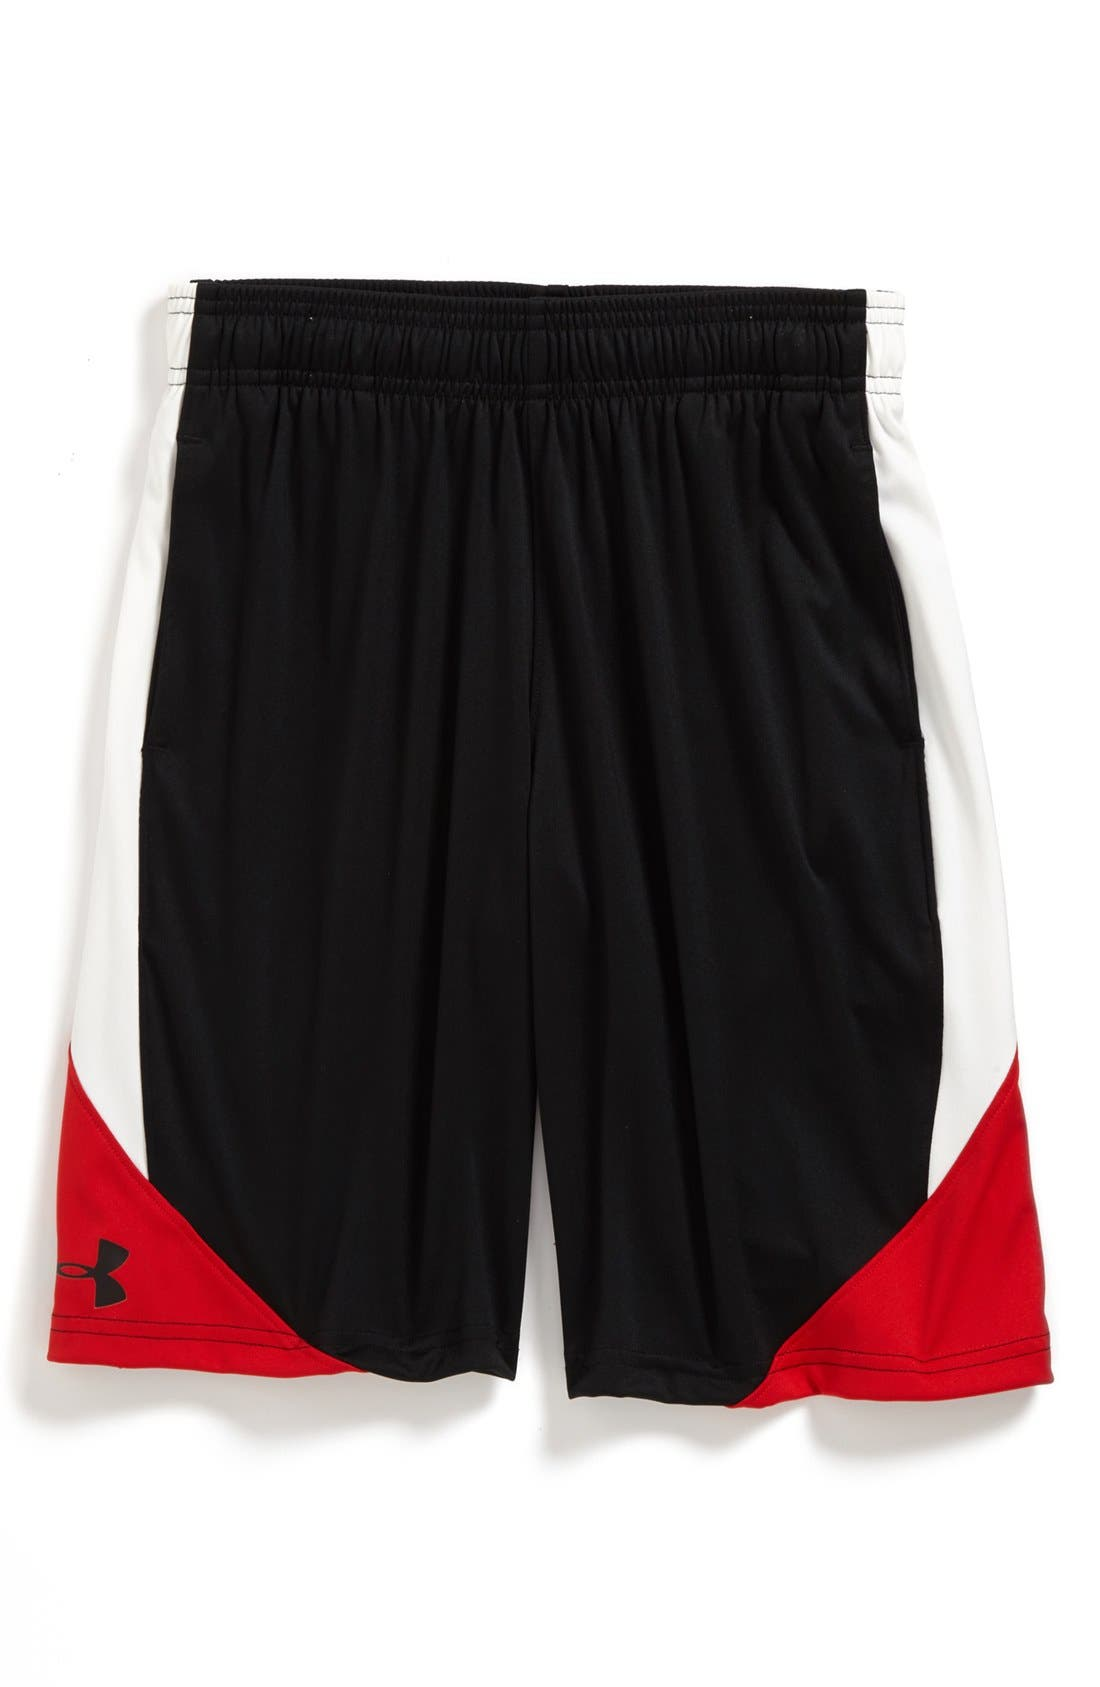 Main Image - Under Armour 'Trilogy' Shorts (Big Boys)